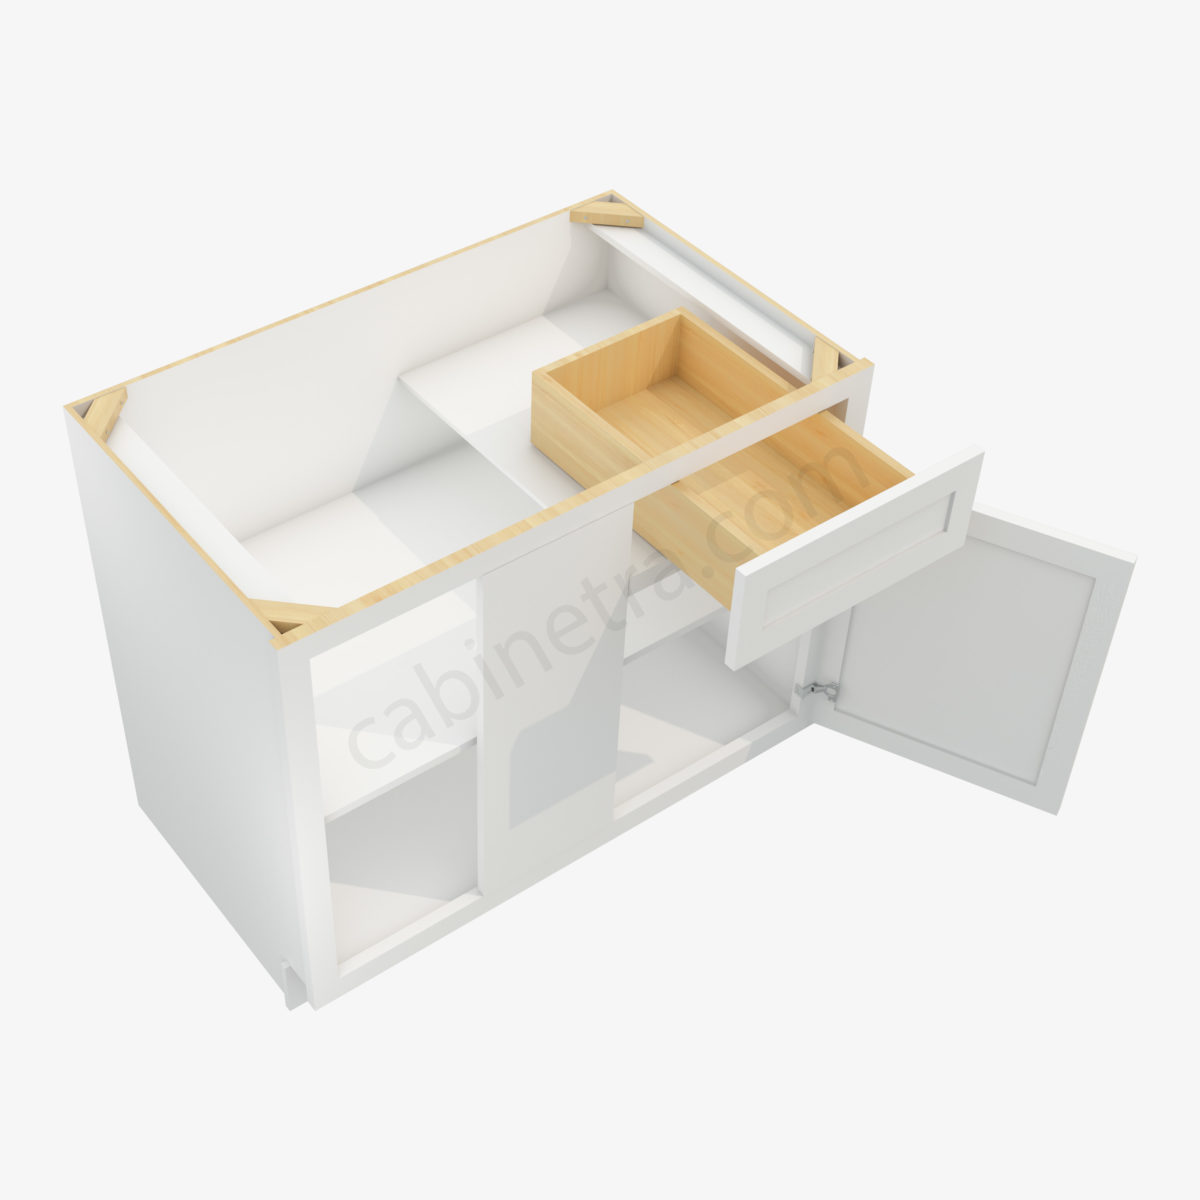 AW BBLC42 45 39W 2 Forevermark Ice White Shaker Cabinetra scaled